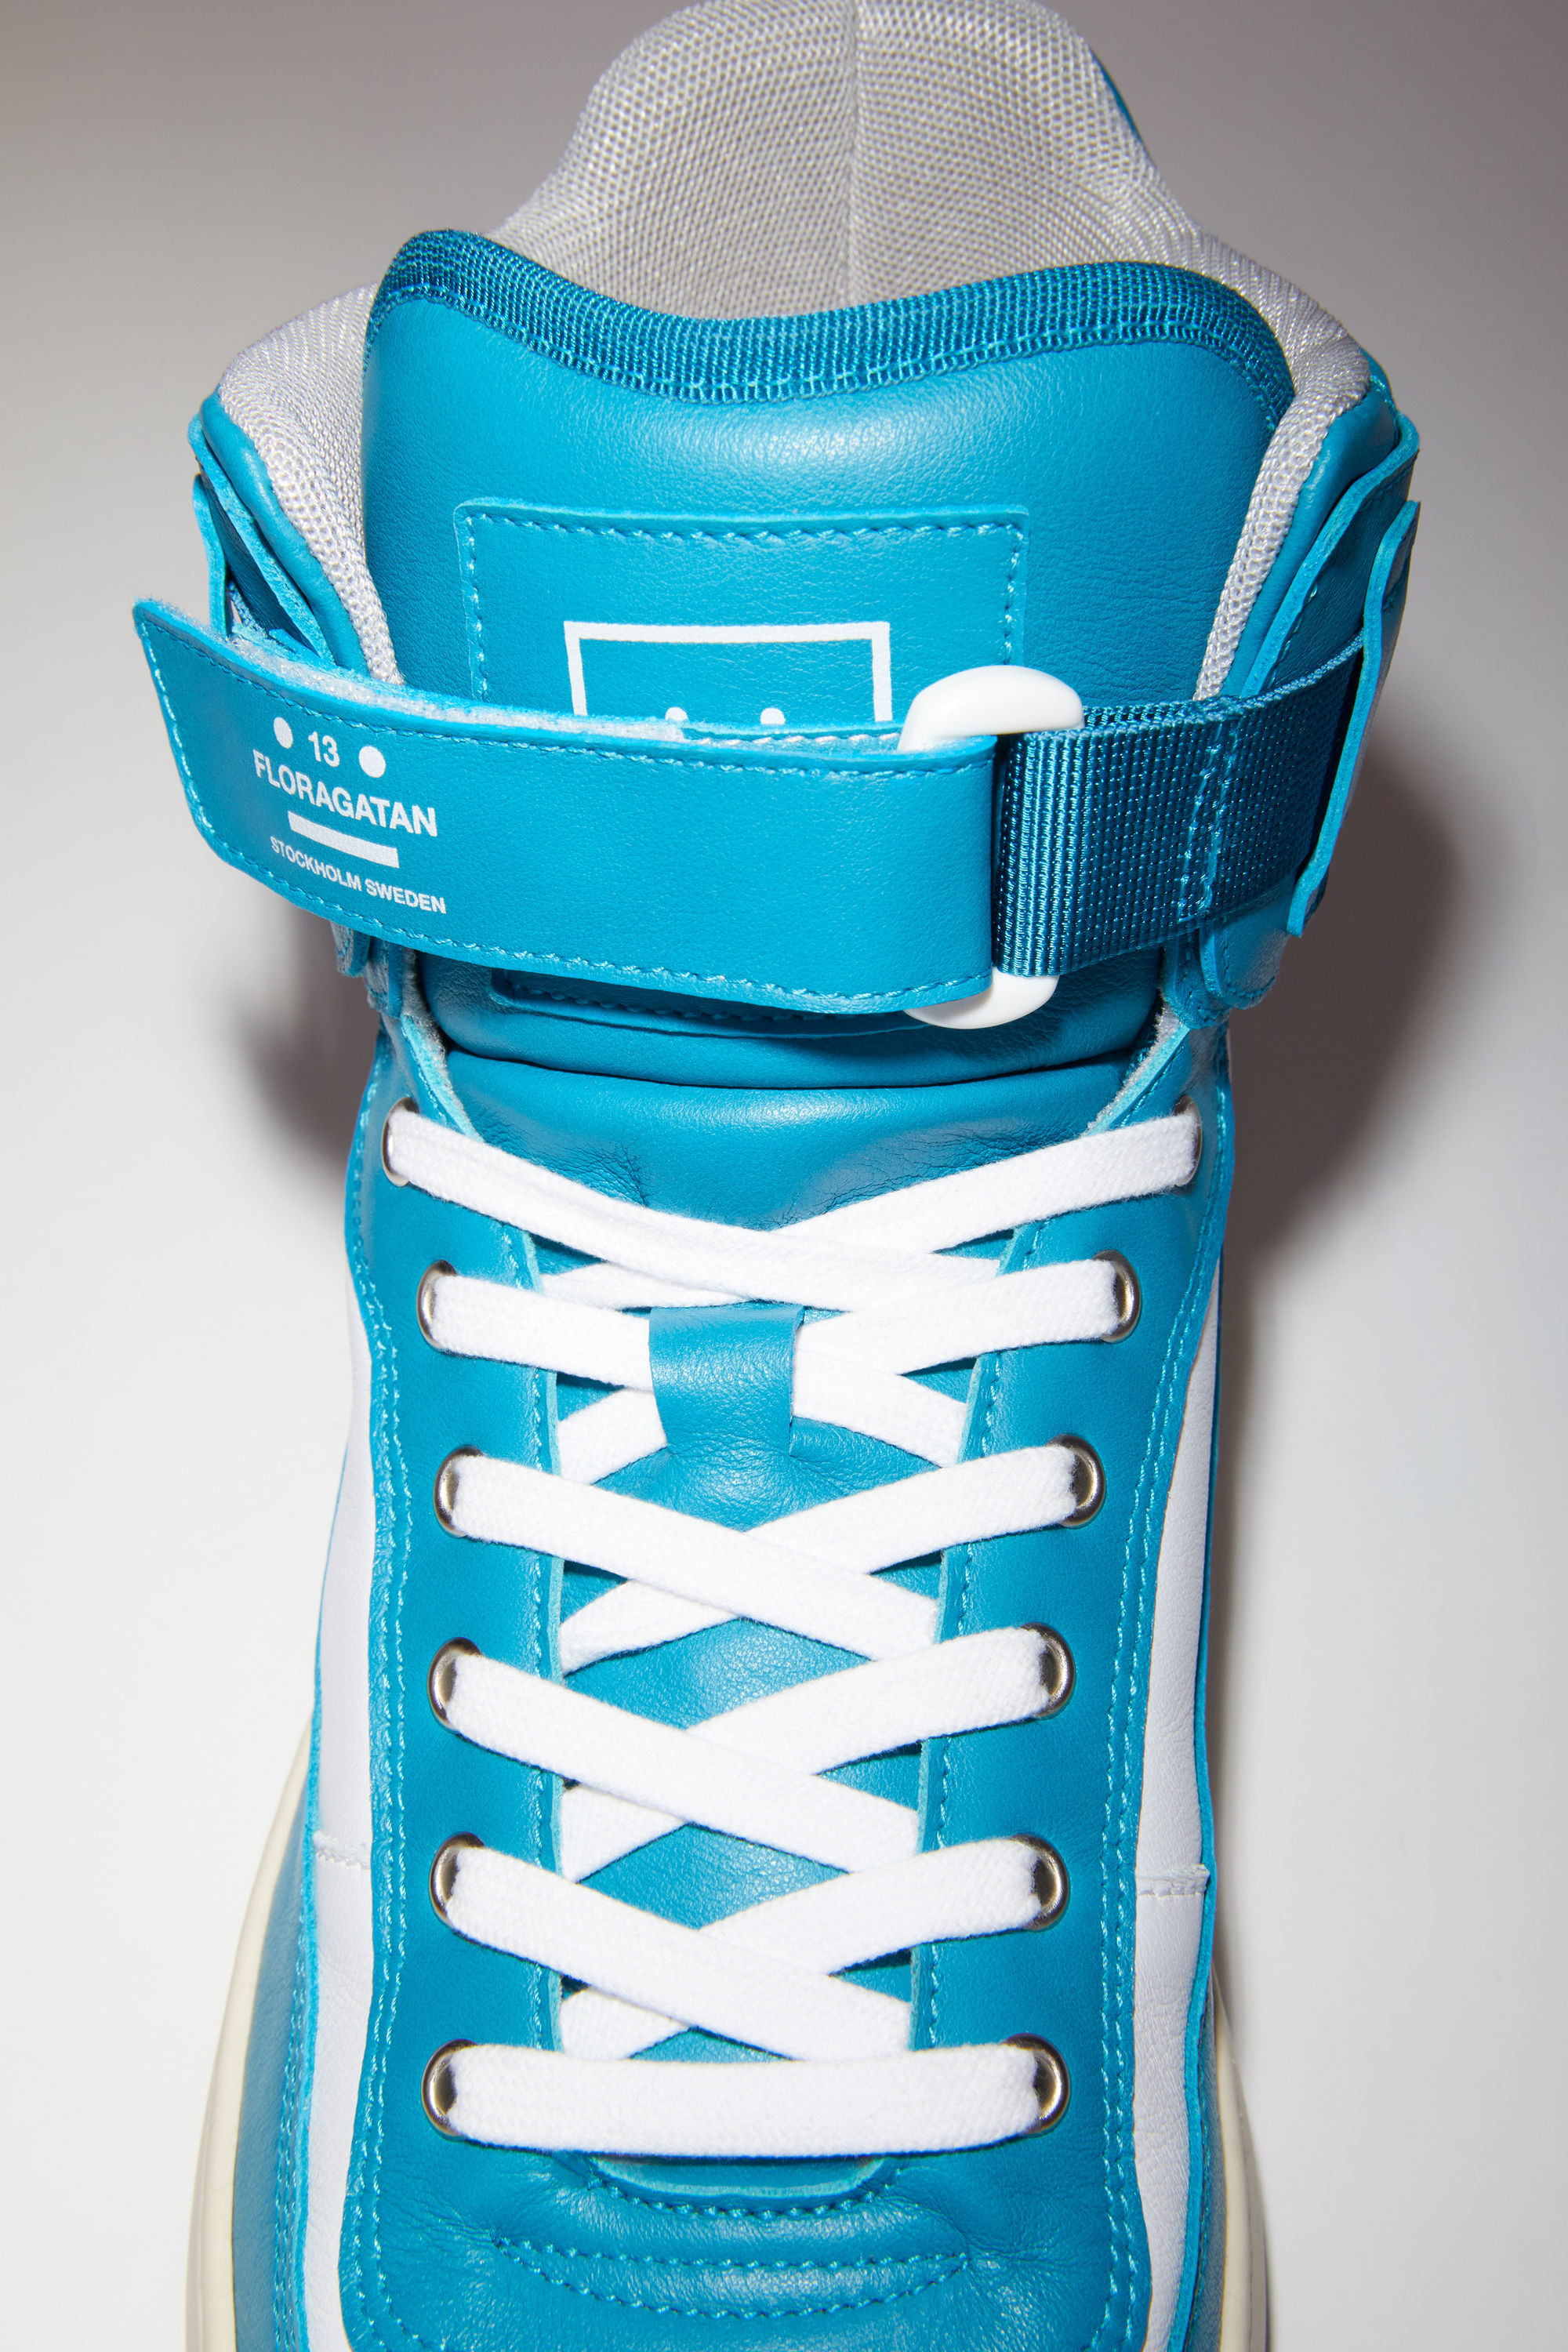 Acne Studios turquoise/white/white lace-up high top sneakers are made of calf leather with a face motif on the back sole. 006